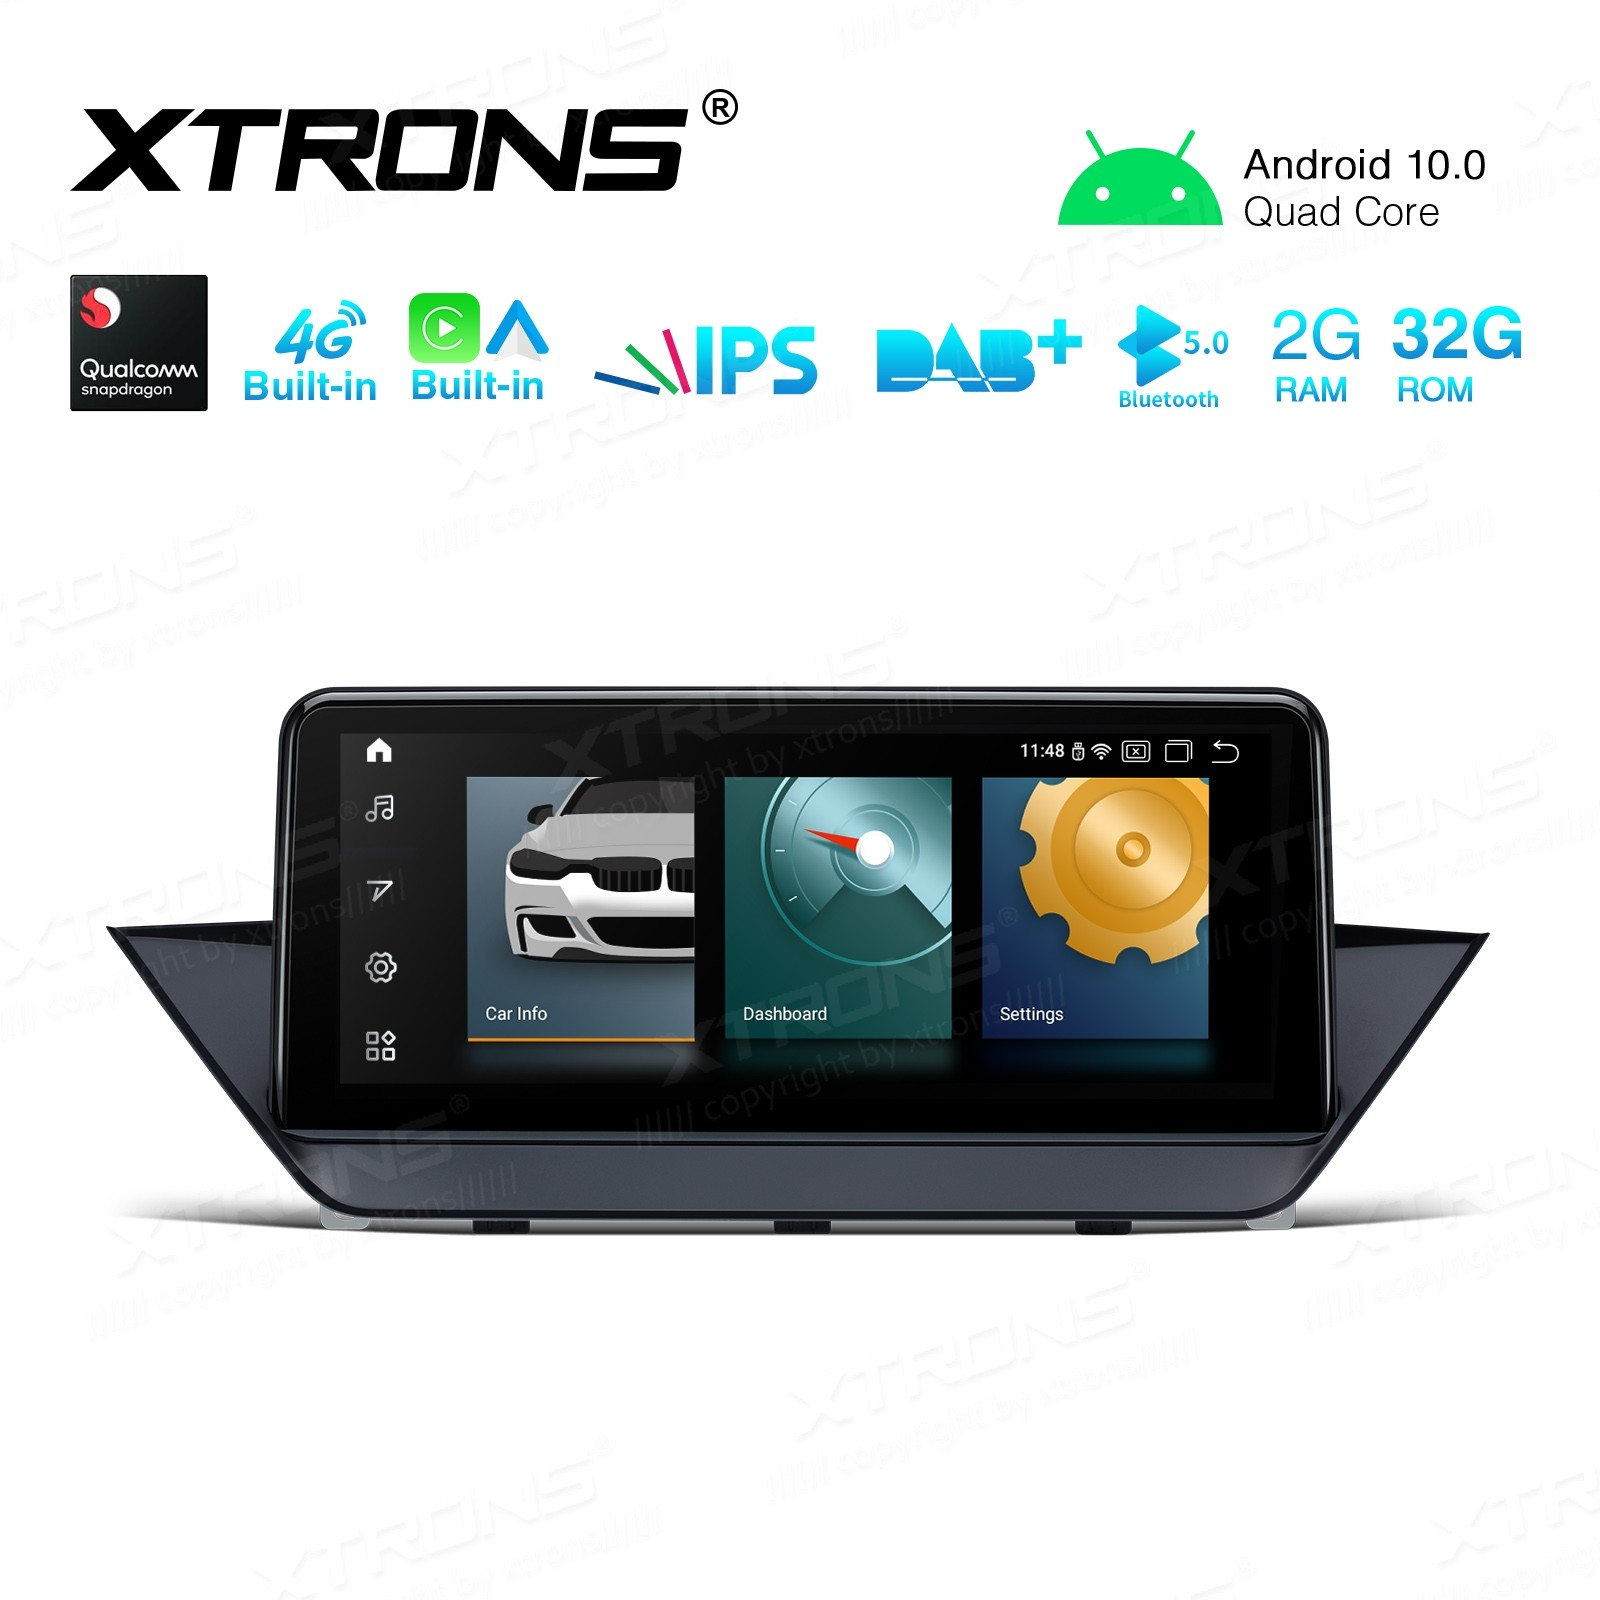 10.25 inch Android Navigation System with Built-in 4G Support Carriers in Asia and Europe with Built-in CarAutoPlay and Android Auto for BMW X1 E84 with NO Original Display